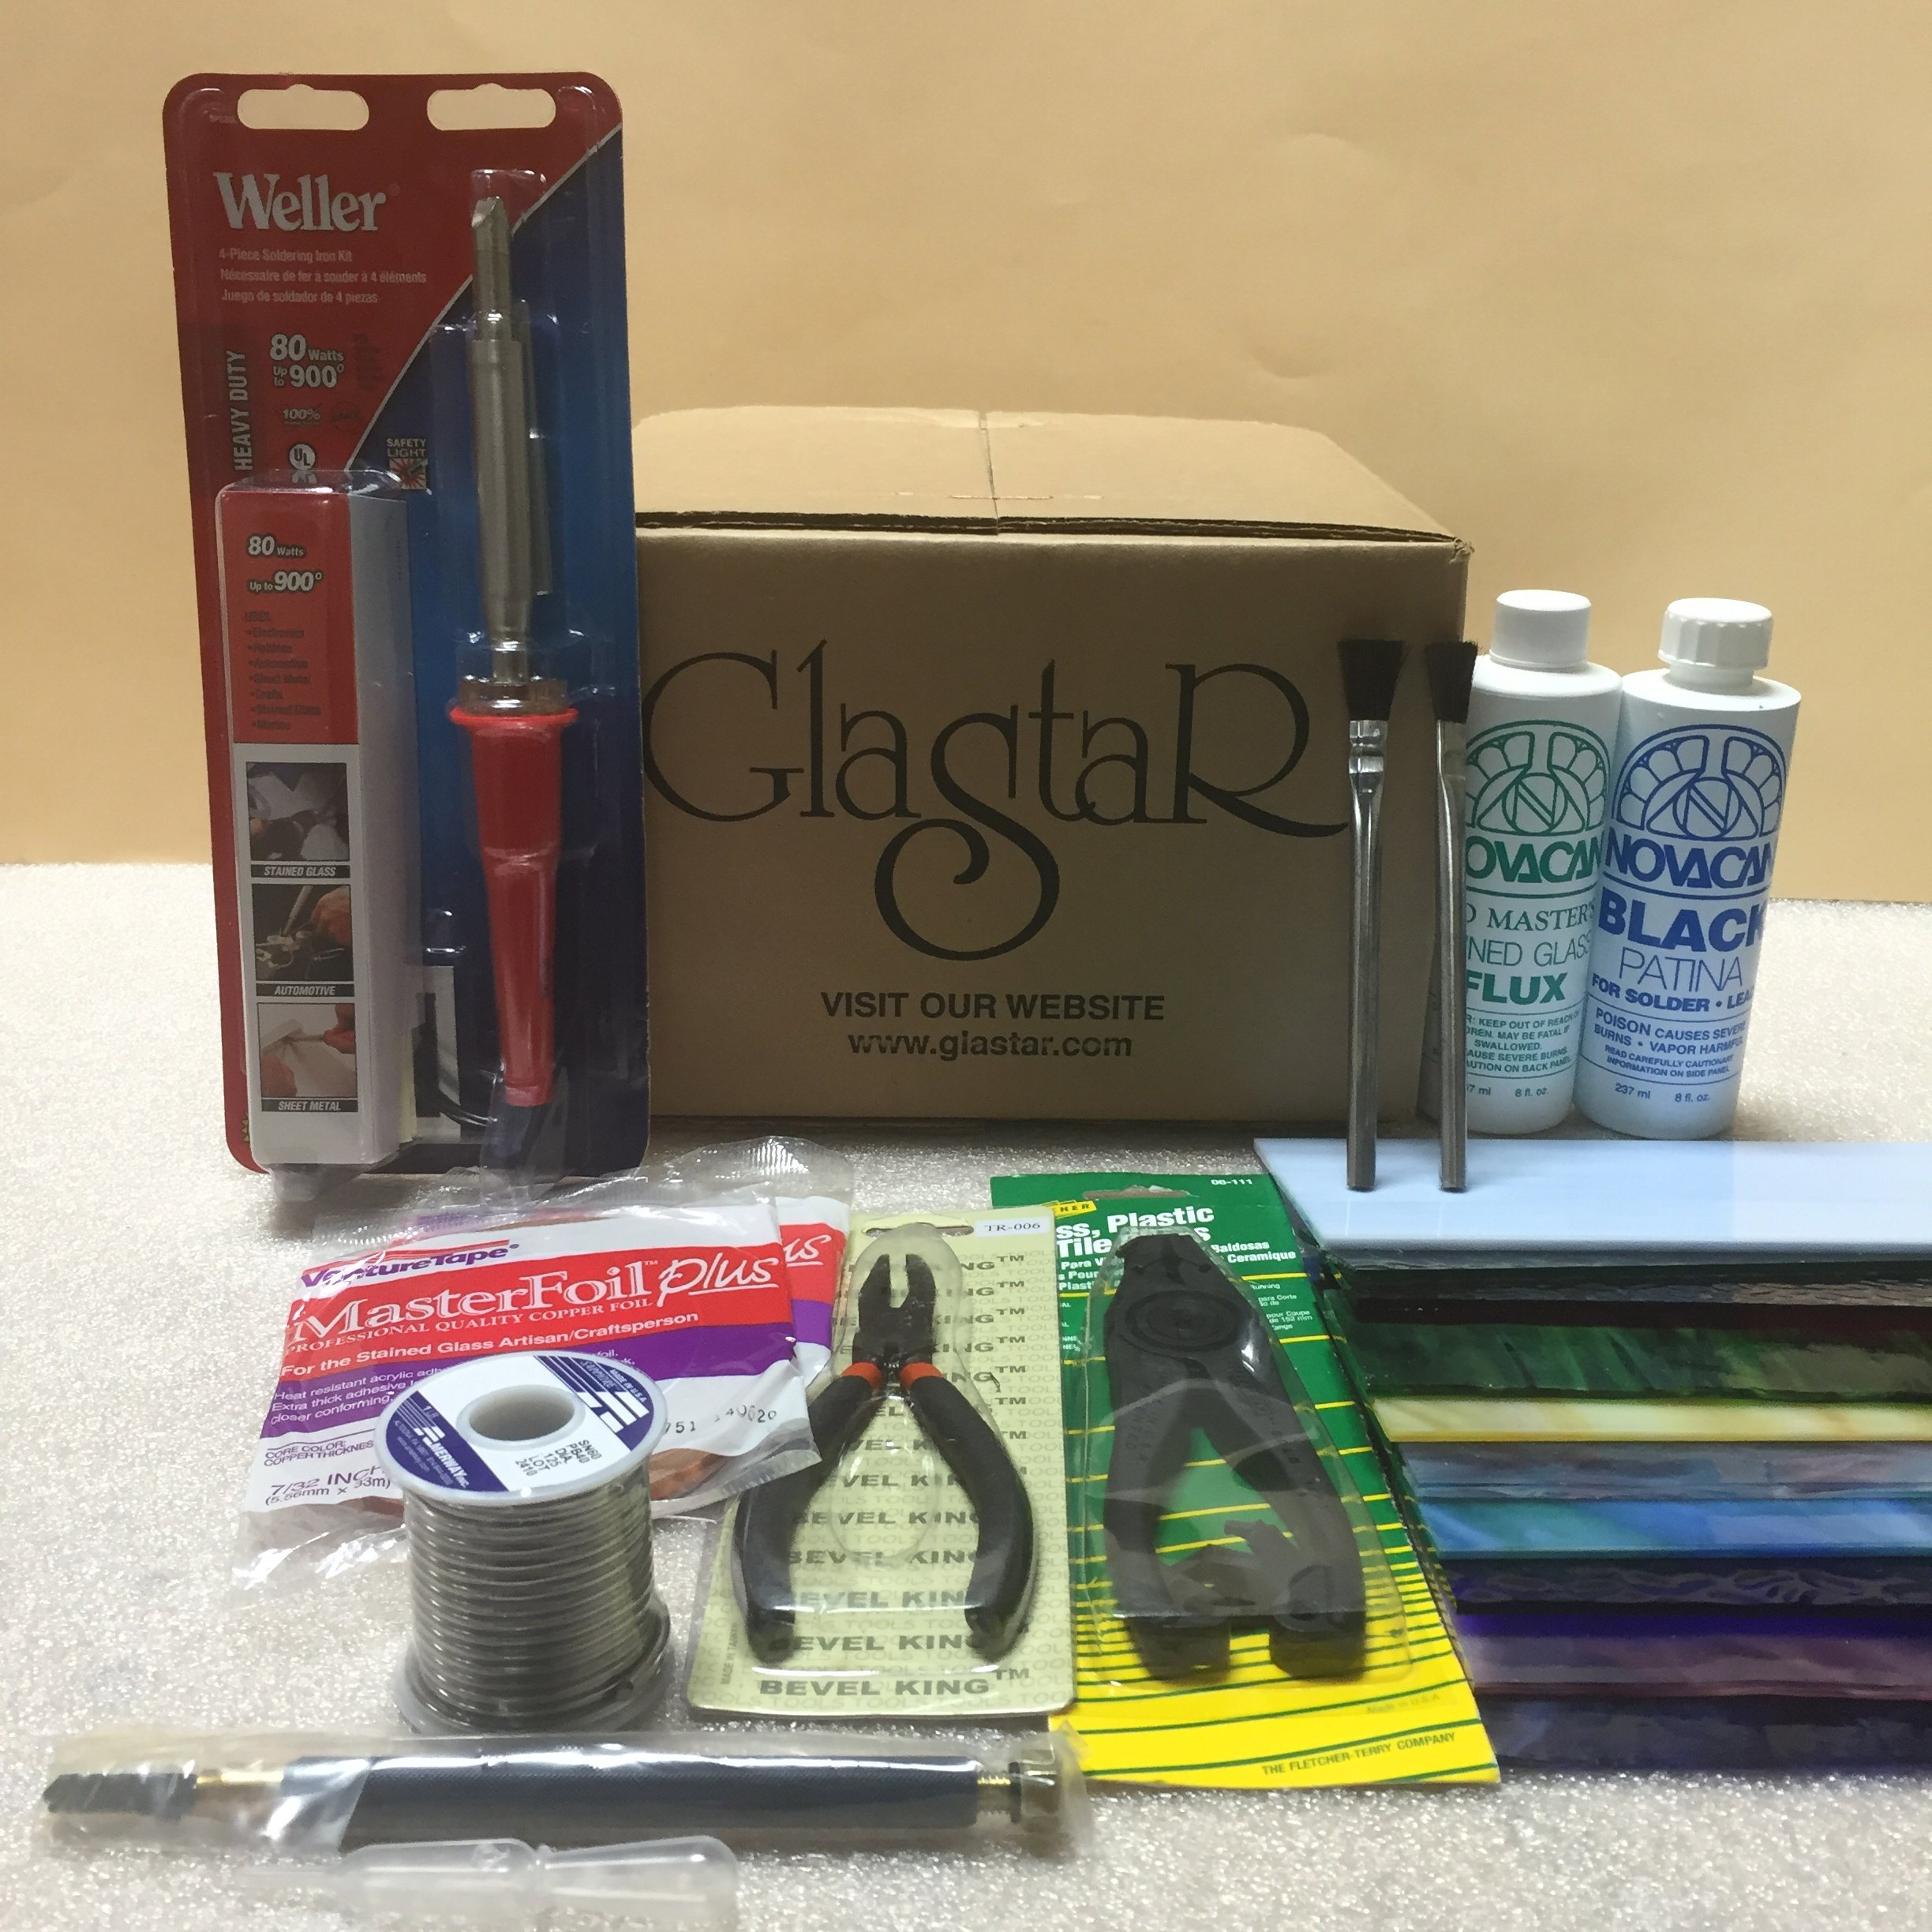 Stained Glass Kit for Beginners and Professionals (with a Grinder)